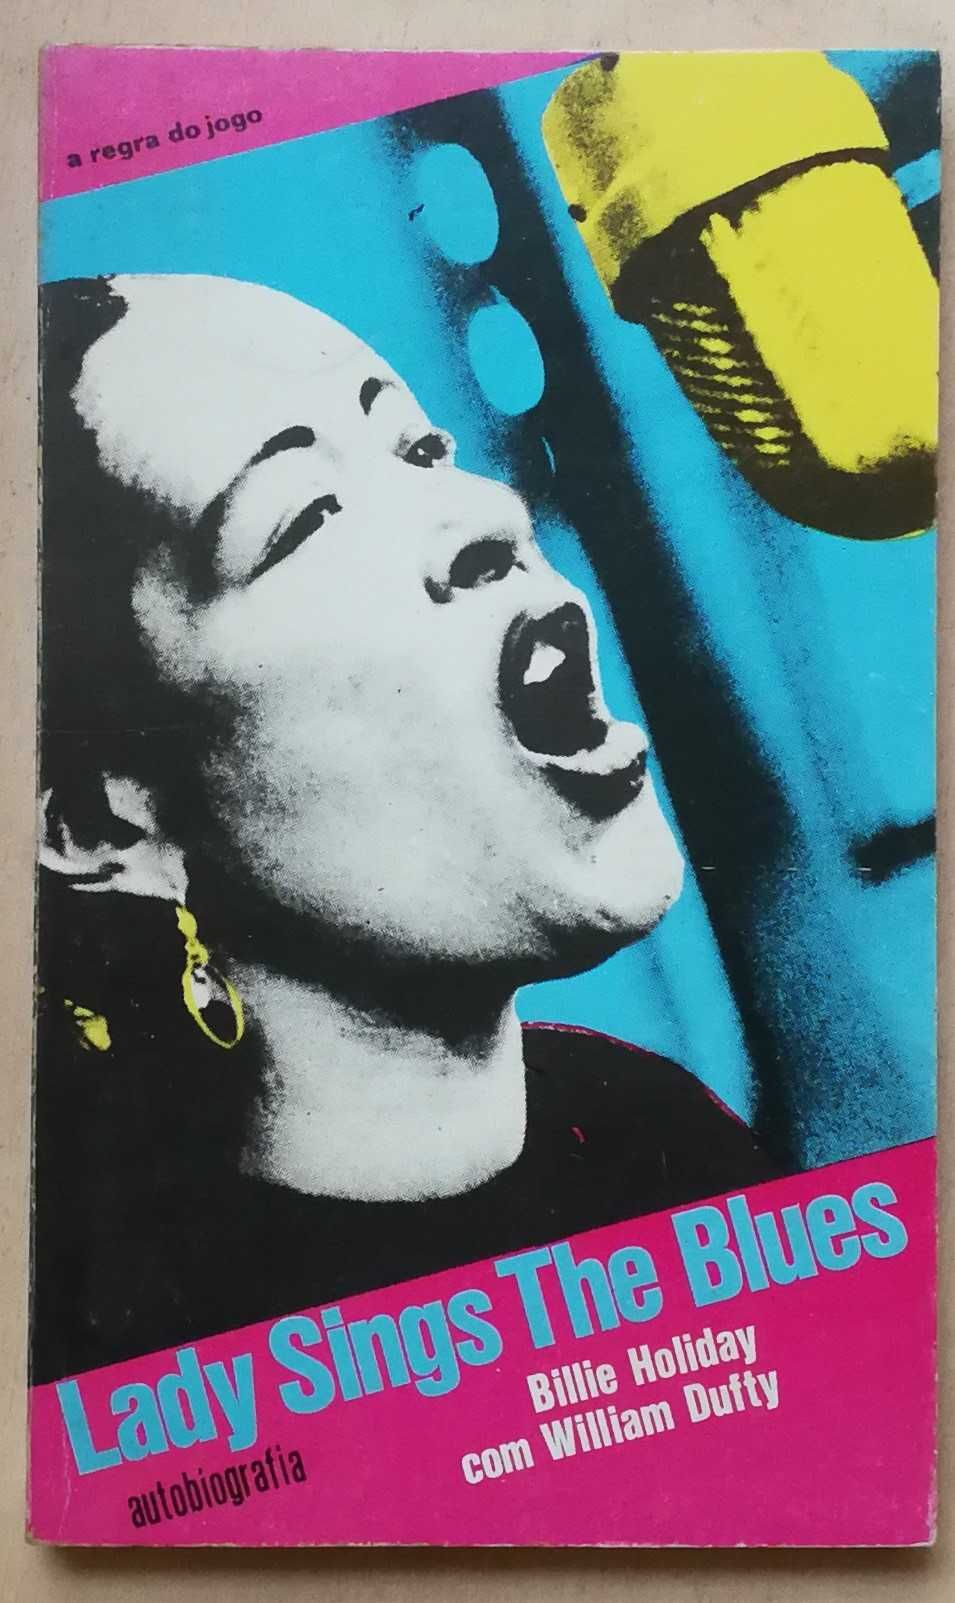 lady sings the blues, billie holiday com william dufty